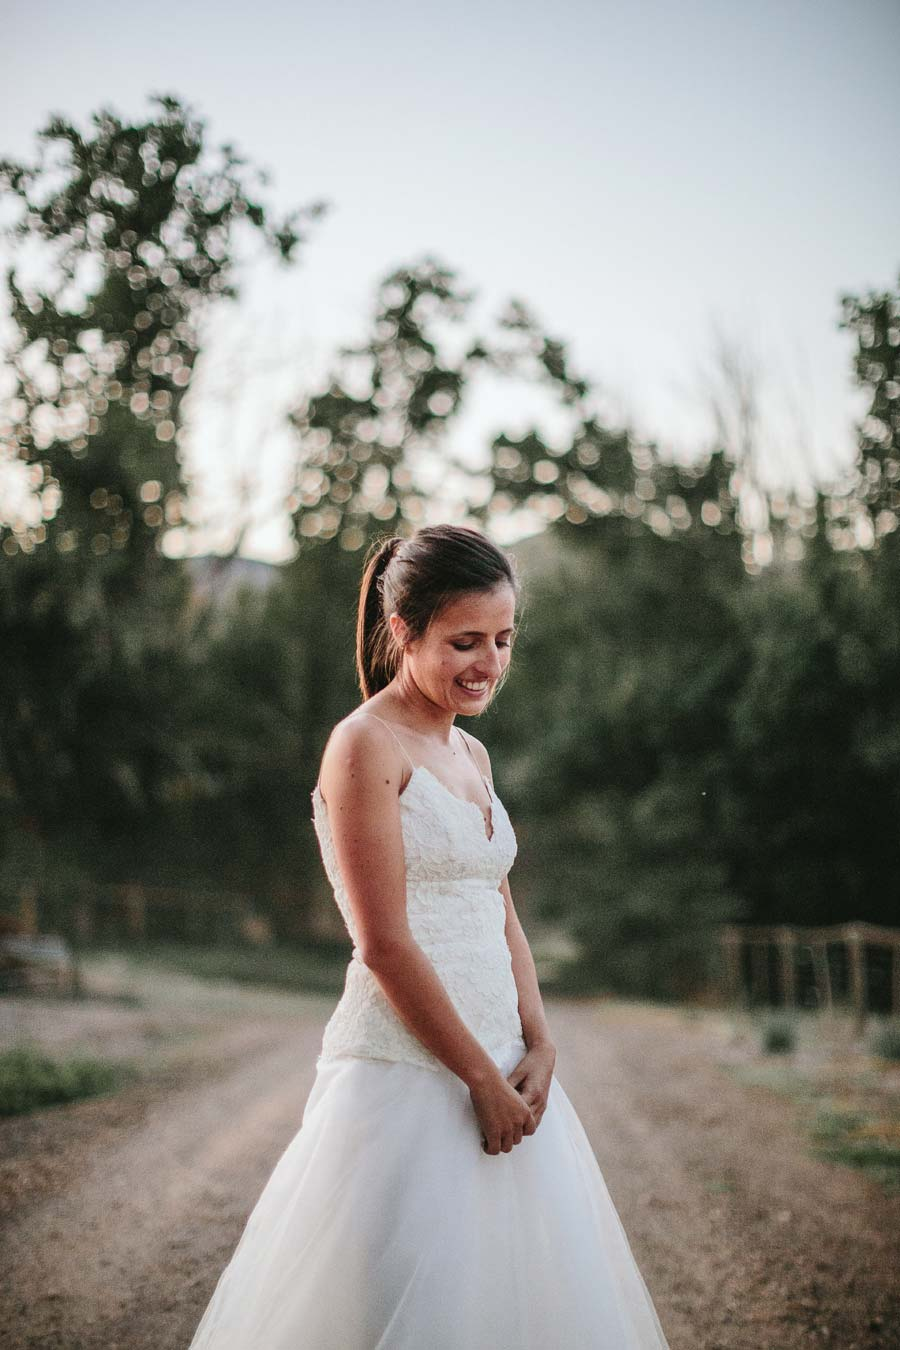 Melbourne outback bride photographer portrait